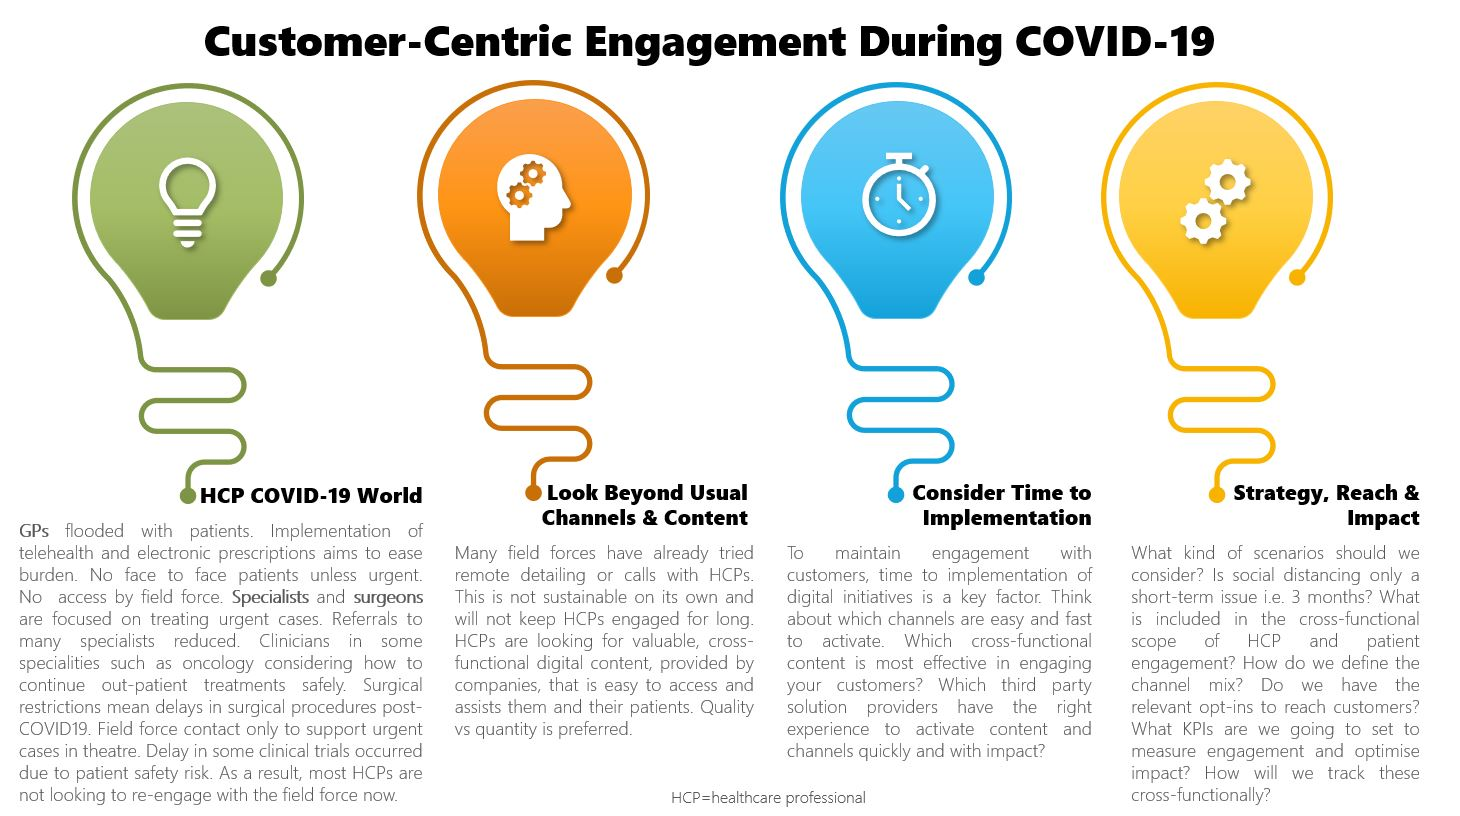 Marketing & Strategy in Healthcare - Customer-Centric Engagement During COVID-19